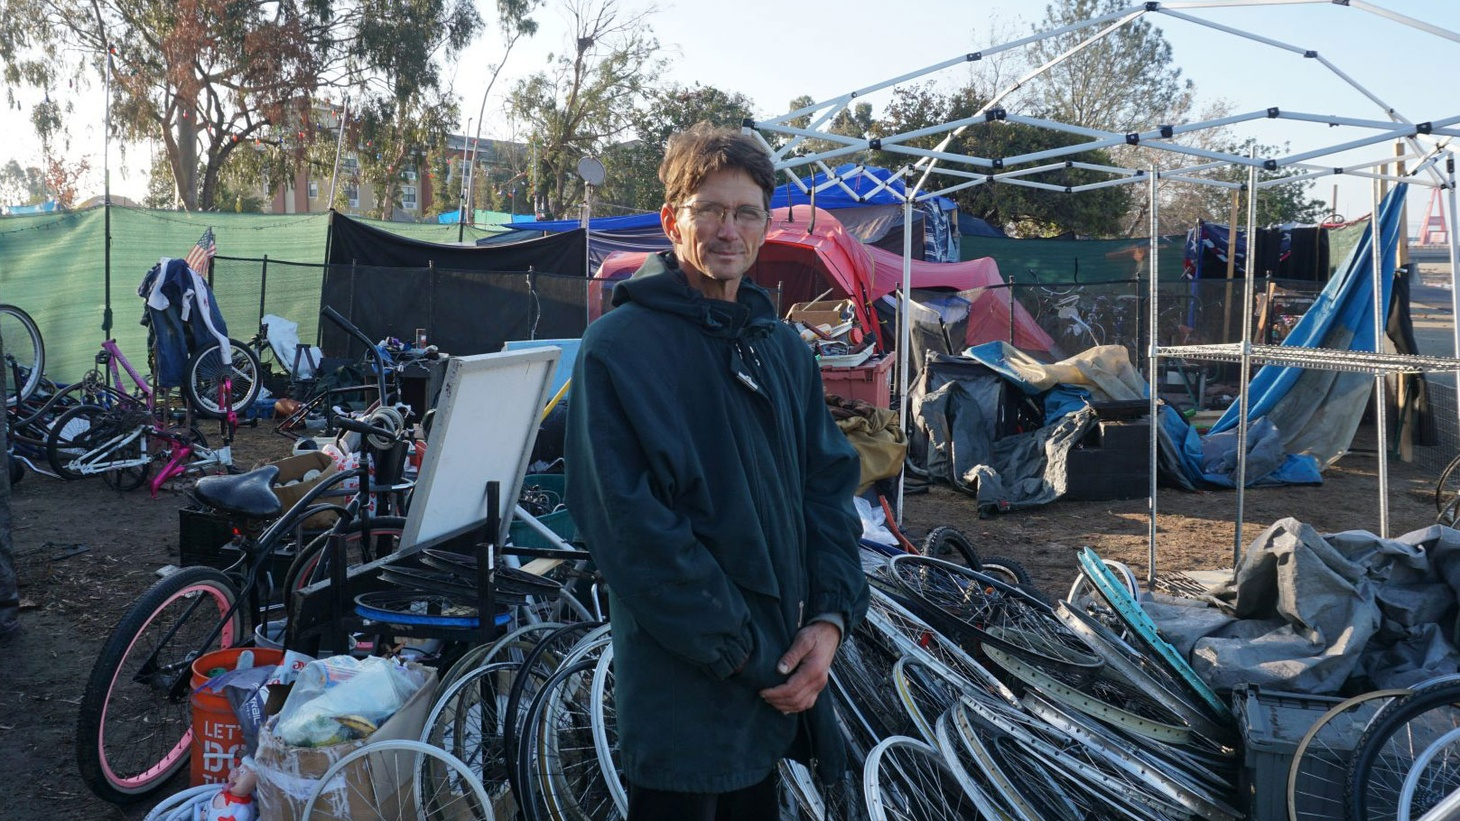 People living in hundreds of makeshift shelters and tents along the Santa Ana River are getting ready to be moved.